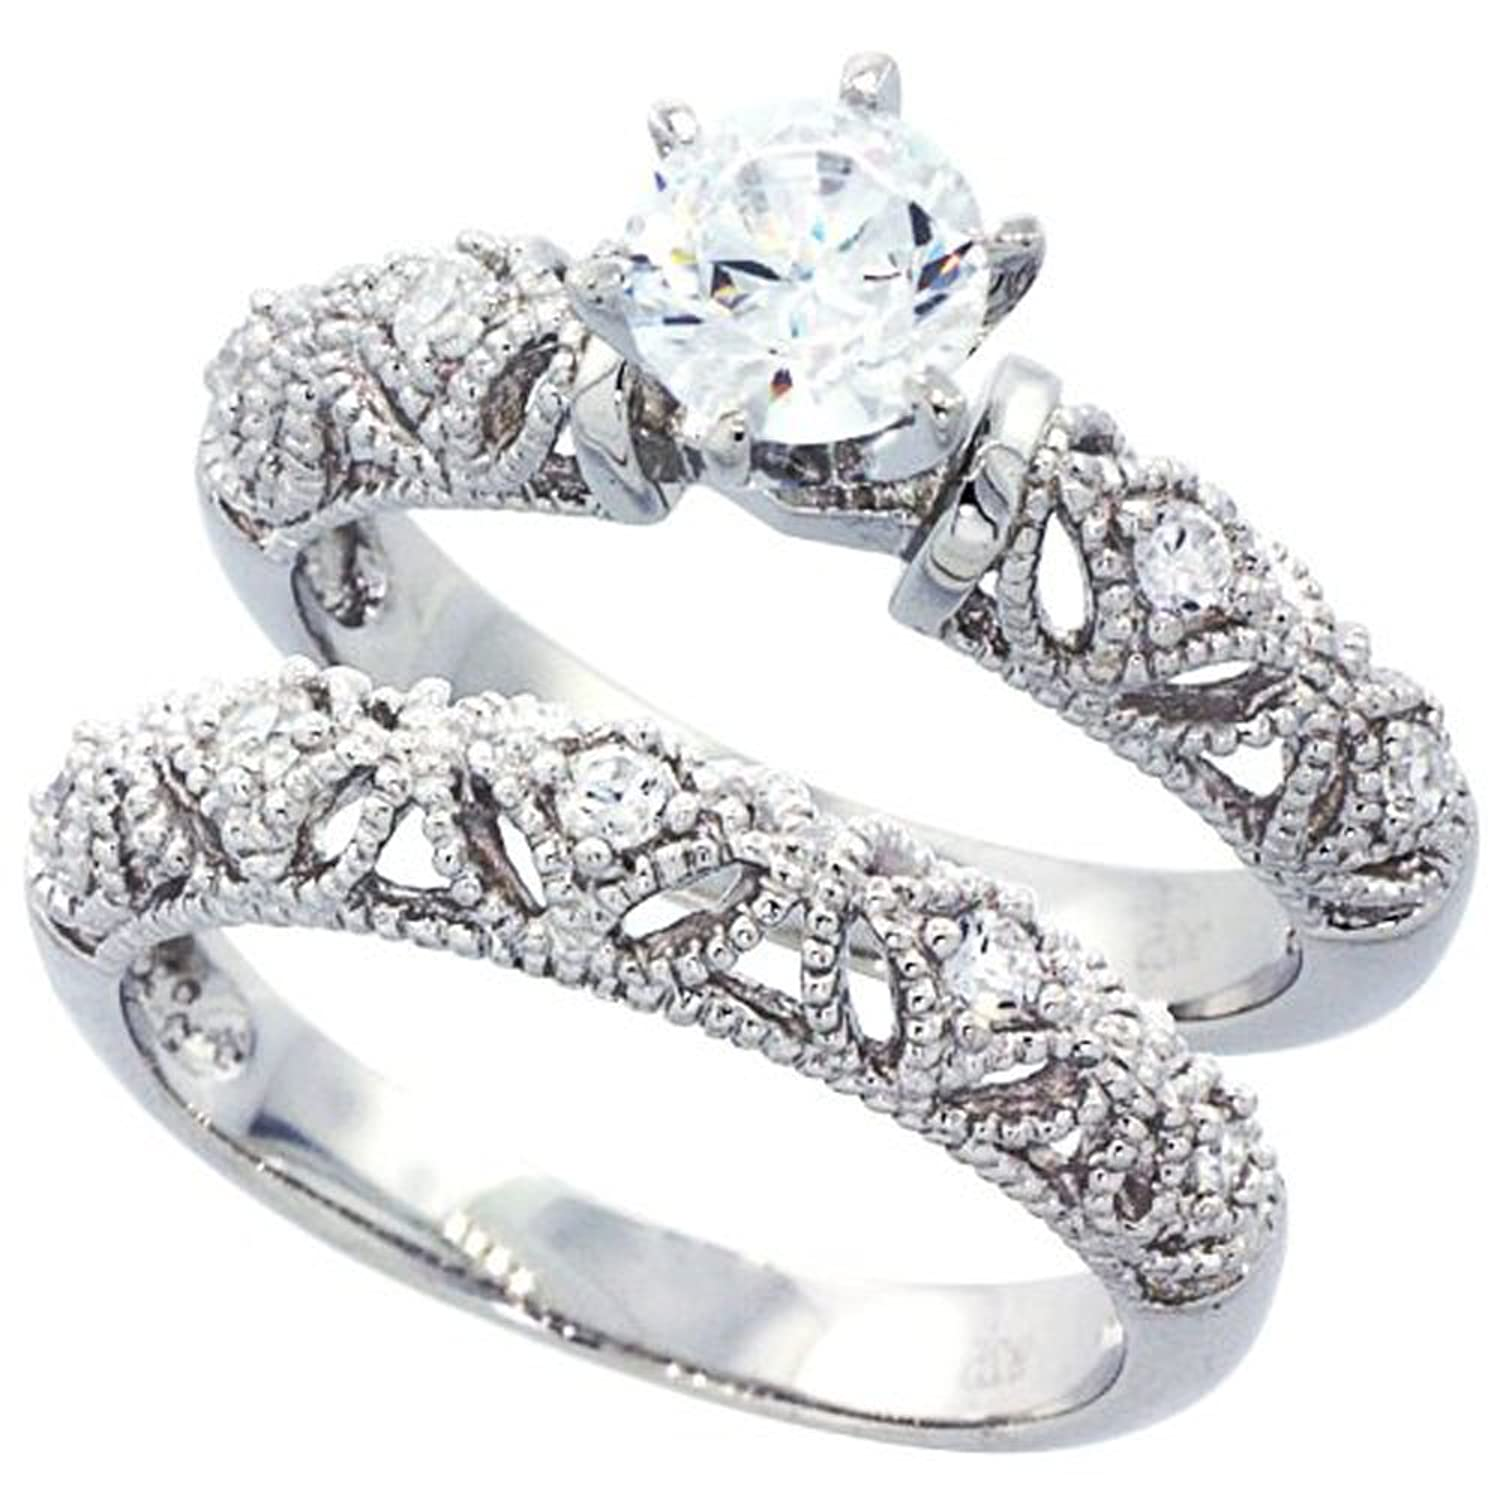 hers ring couple engagement mens sterling image and tungsten set carbide his wedding silver rings jewellery